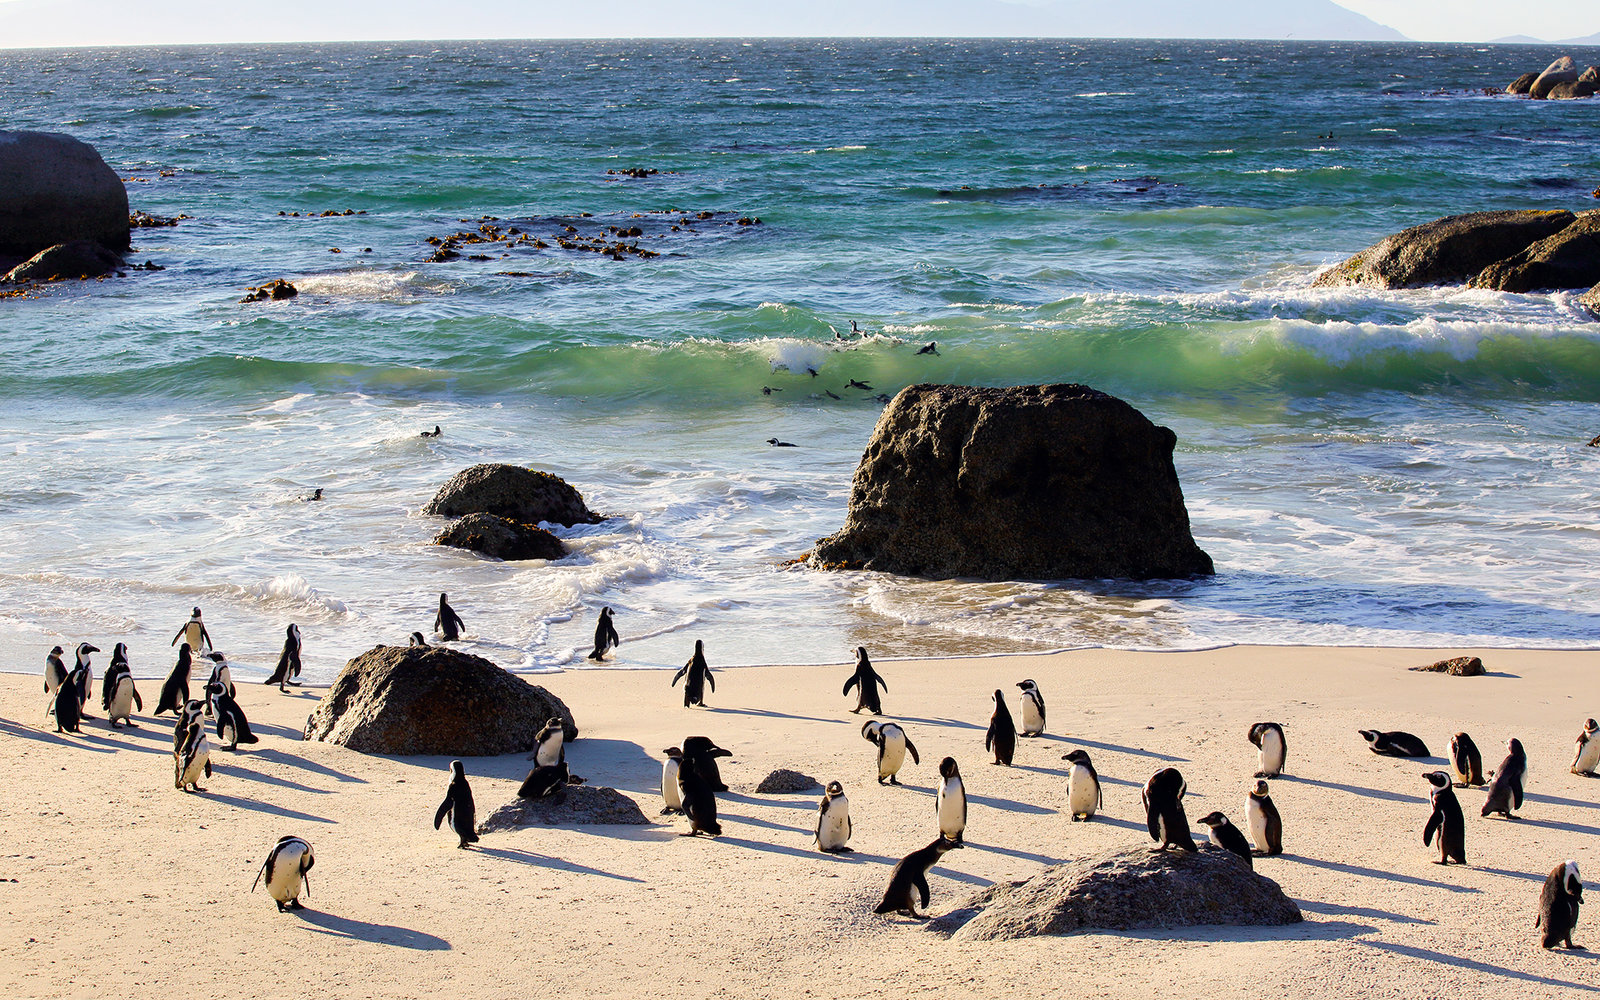 African penguins coming ashore after a swim